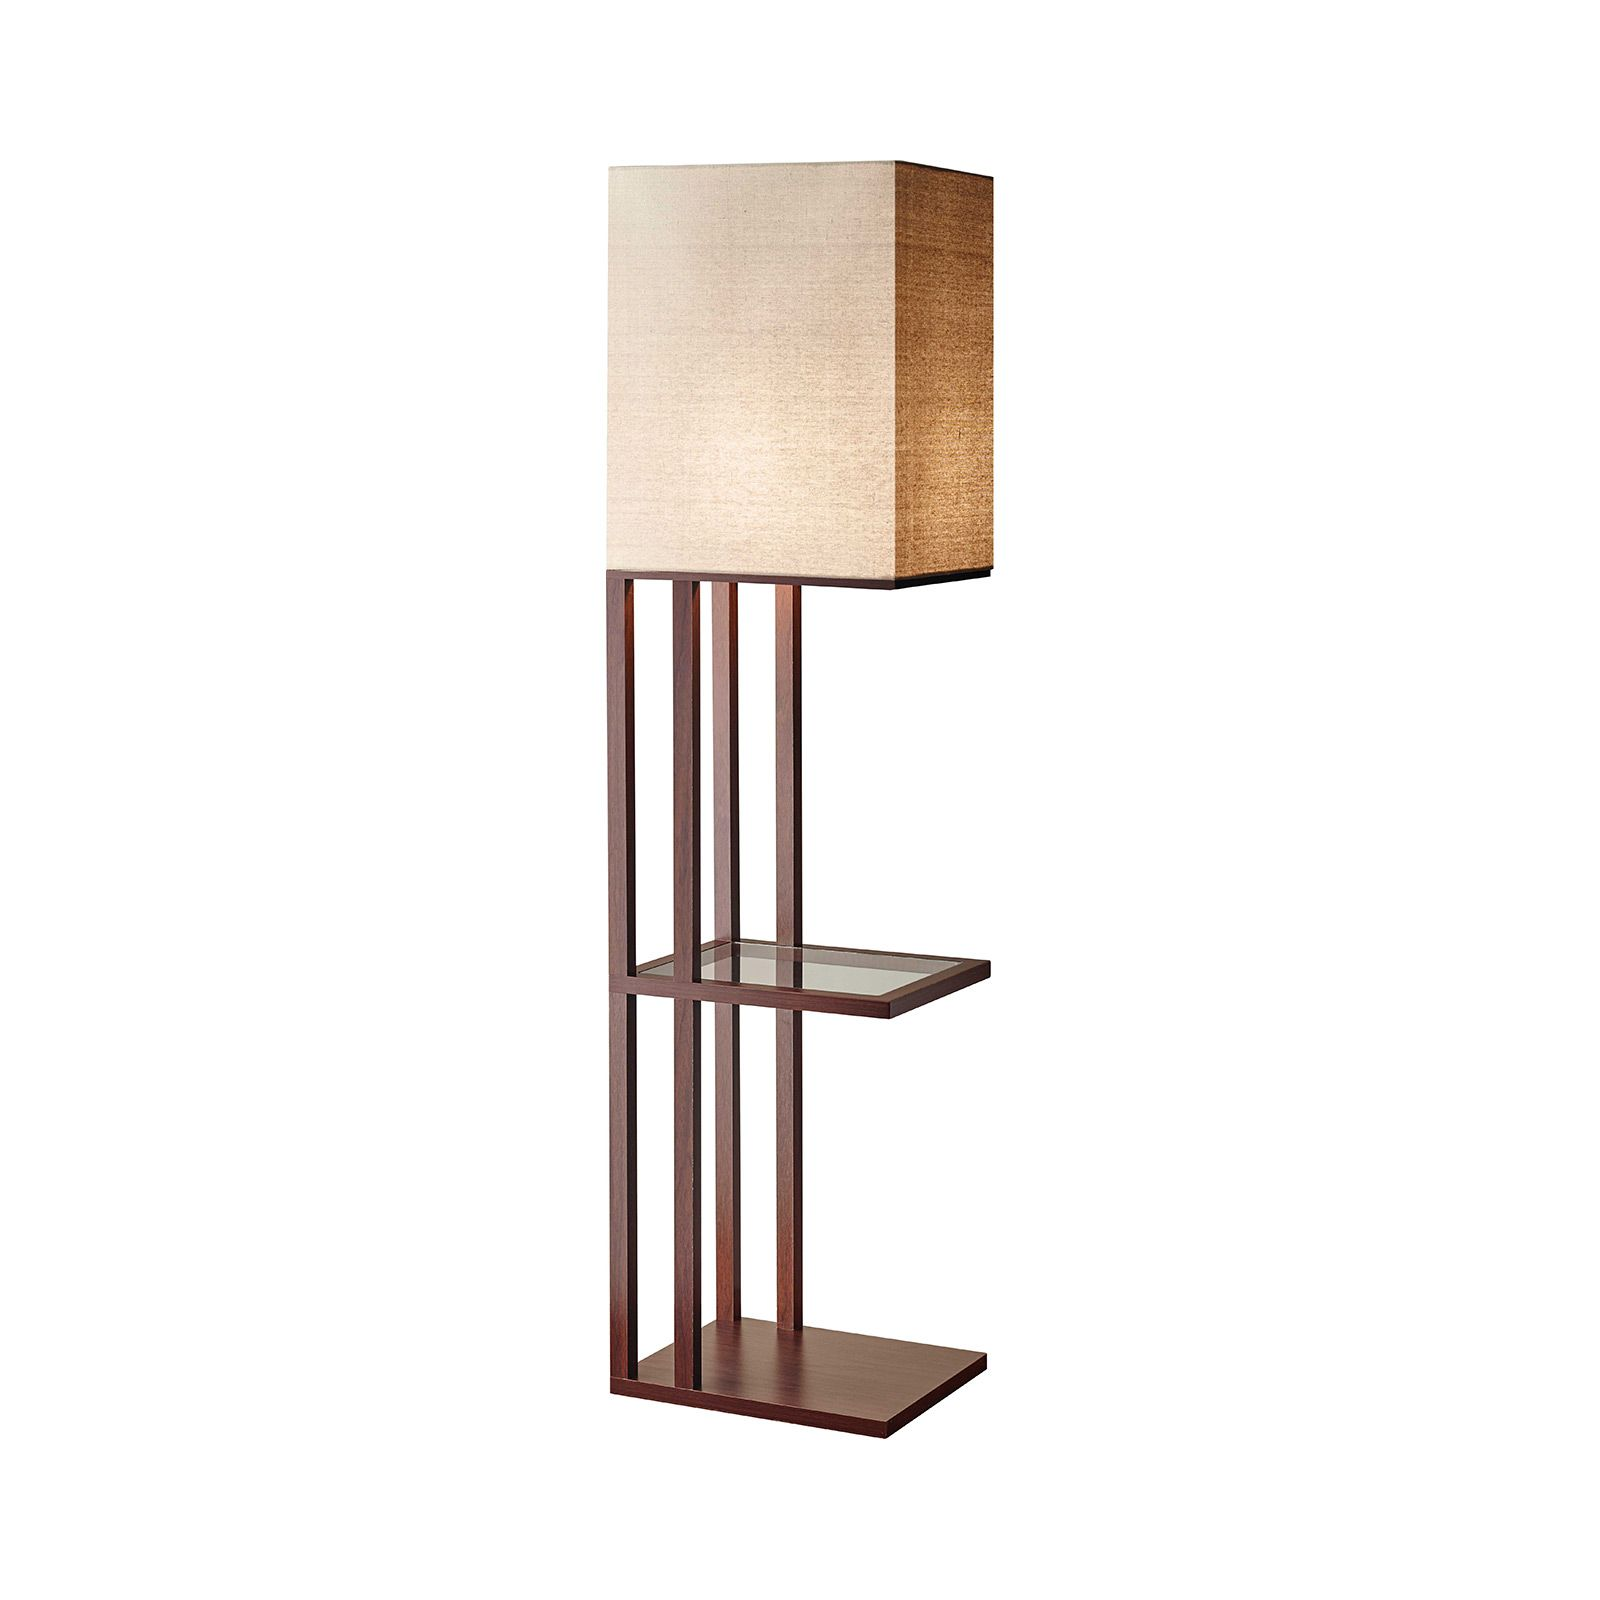 We Found That To Be The Case With The Ecko Floor Lamp, An Awesome  Contemporary Piece Combining Room Lighting With The Functi